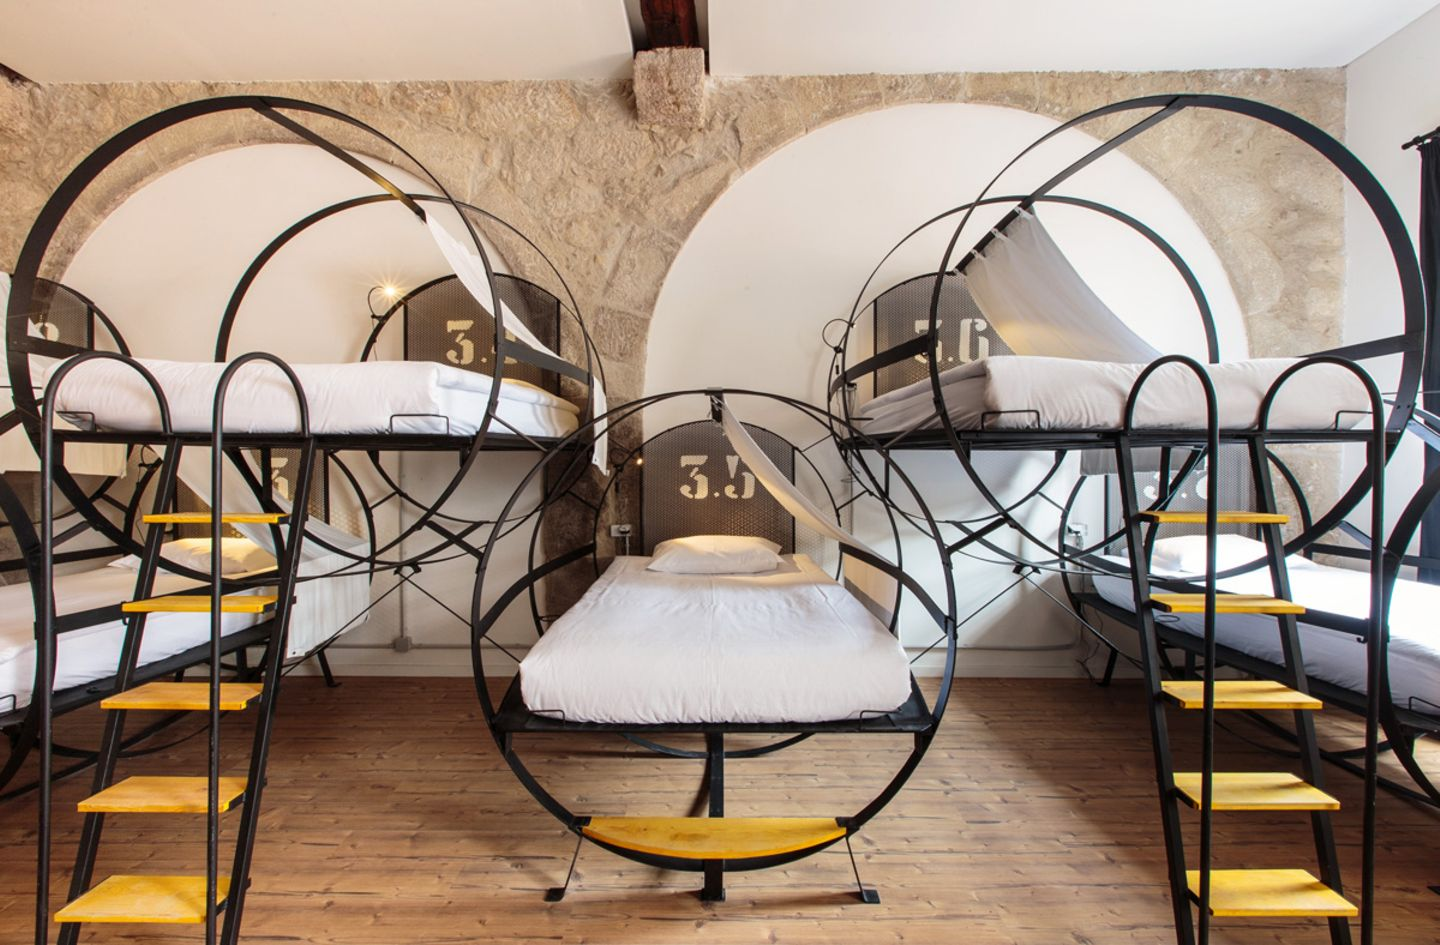 The House of Sandeman Hostel and Suites, Porto, Portugal